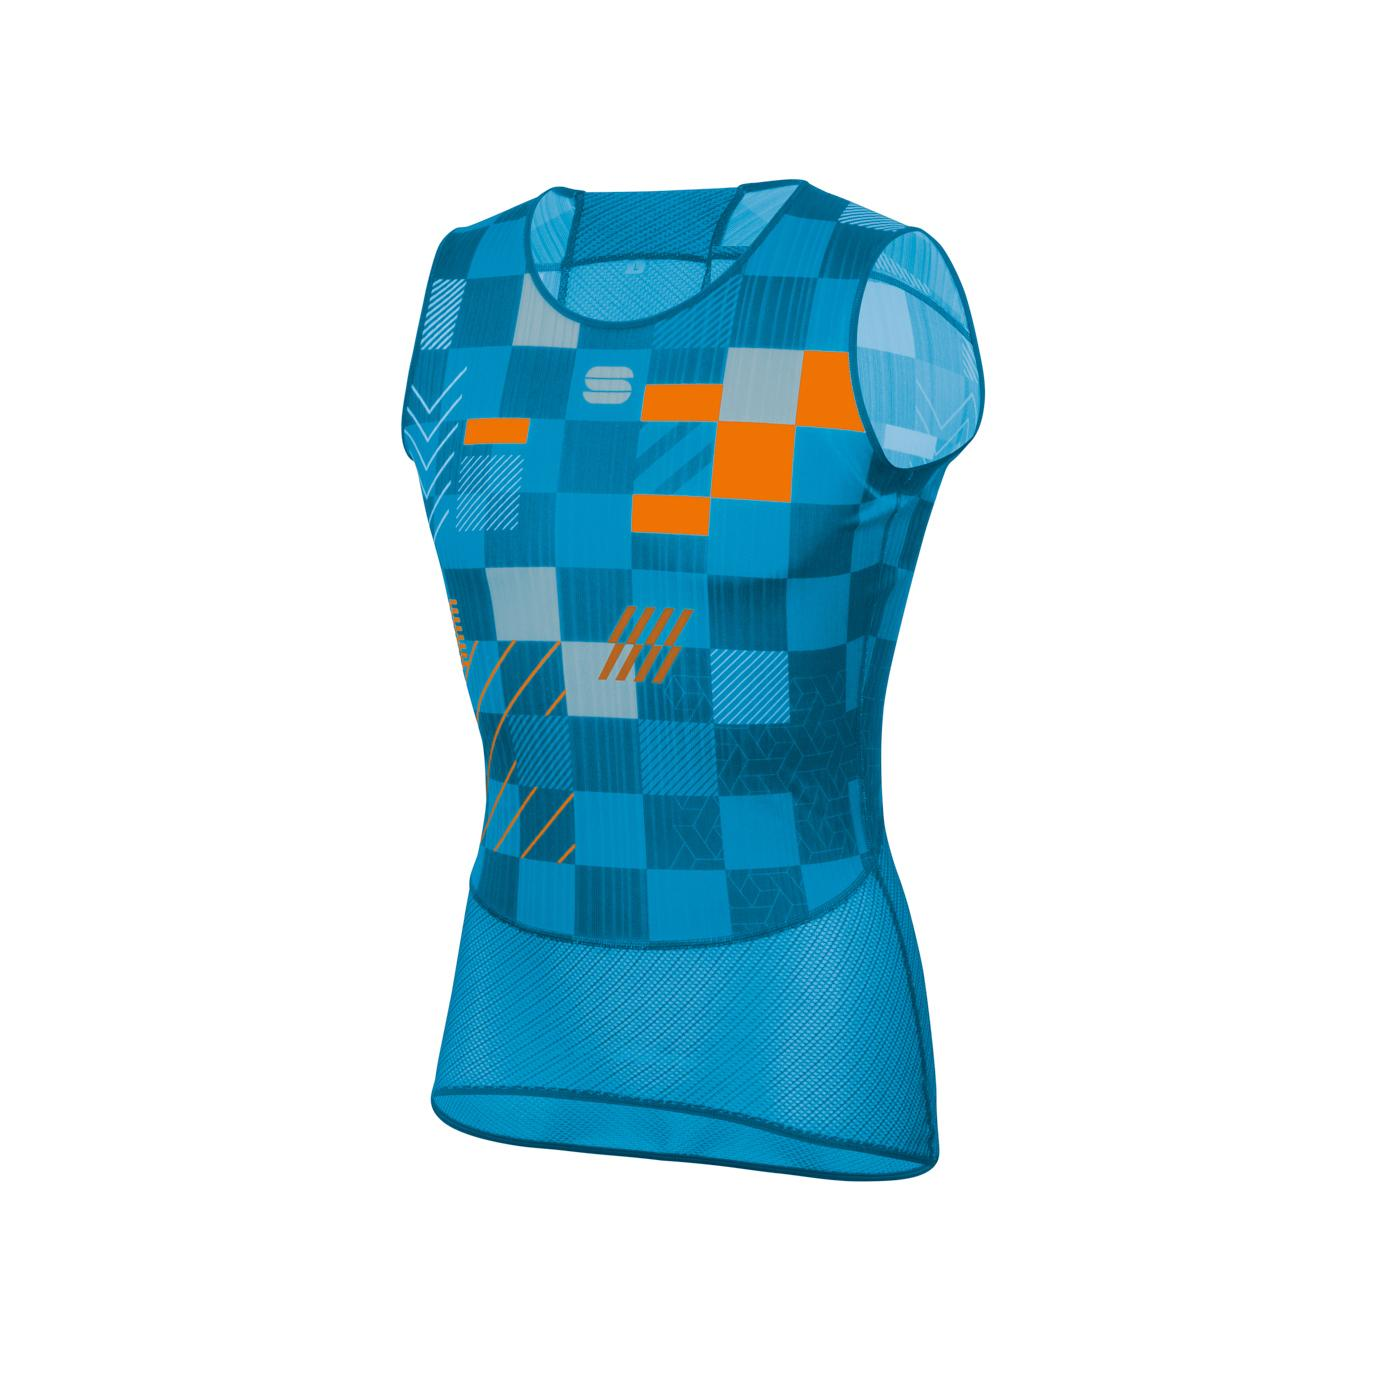 Sportful Ondershirt Mouwloos voor Heren Blauw Oranje - SF Pro Baselayer Sleeveless.-Blue A Methyl Orange